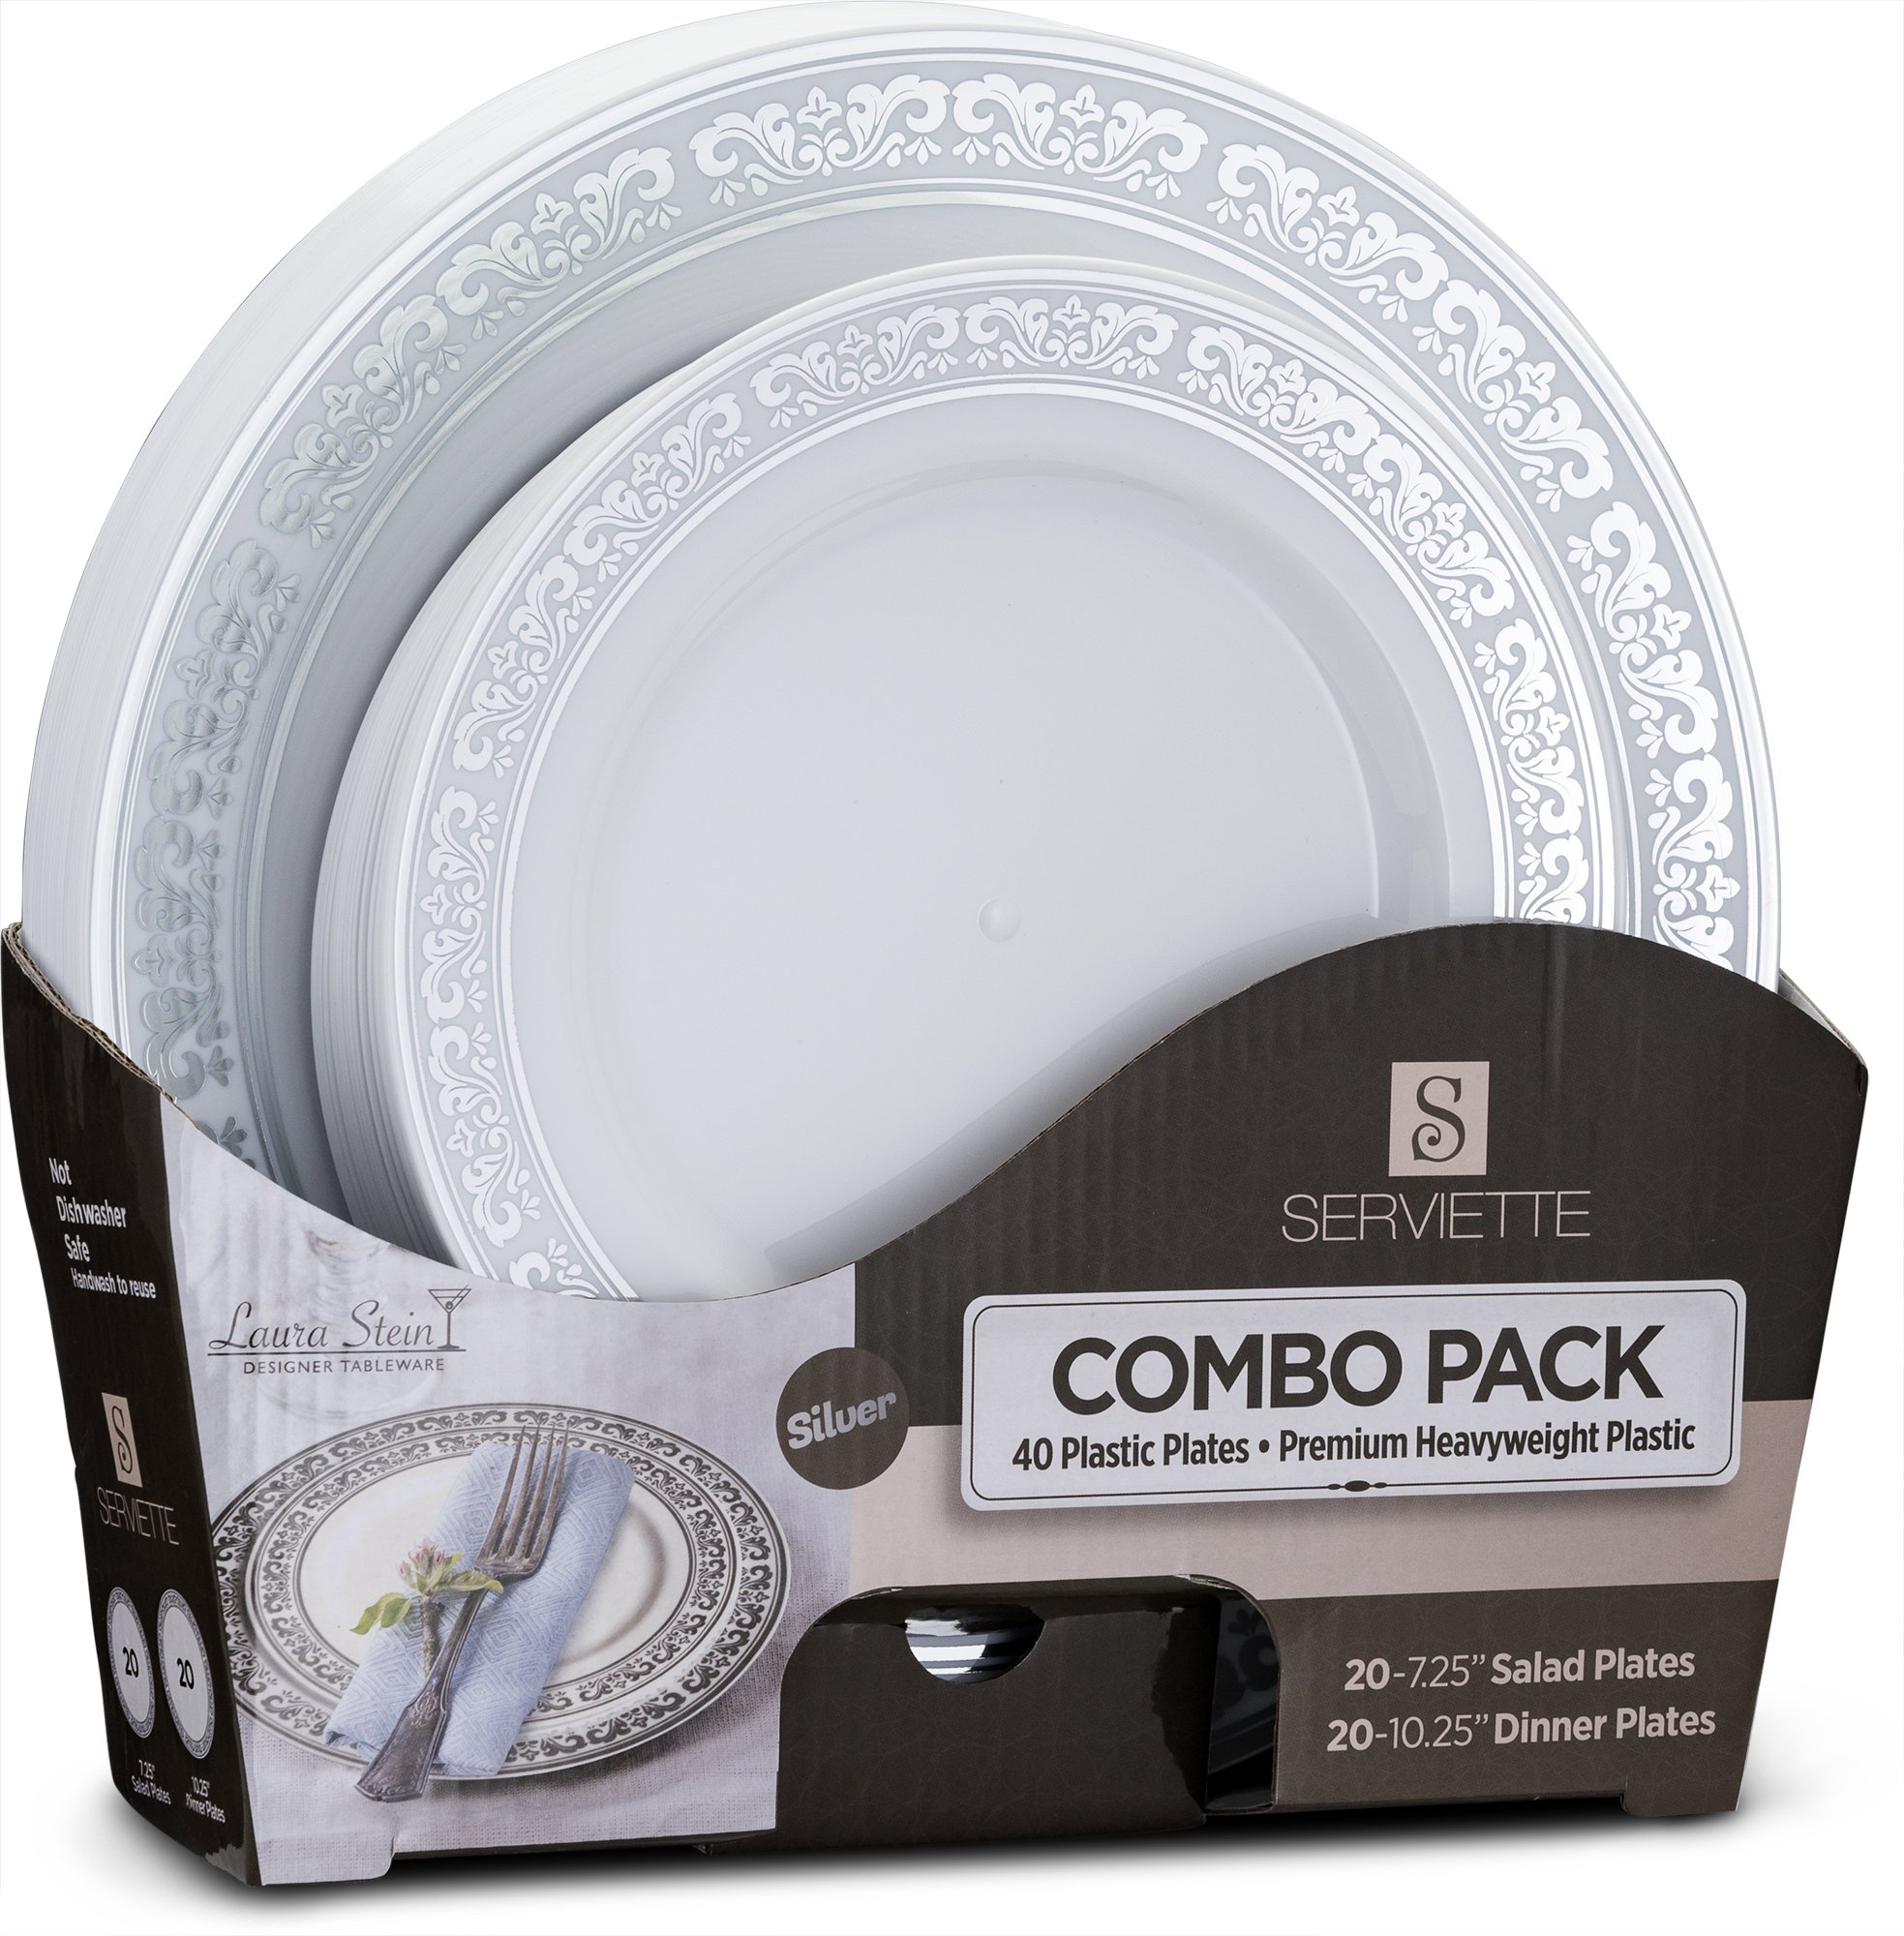 Laura Stein Designer Tableware Set of 40 Party Plates White And Silver Rim Serviette Series Includes 20-7.5'' Salad Plates & 20-10.75'' Dinner Plates Heavy Duty Plastic Disposable Dishes Combo